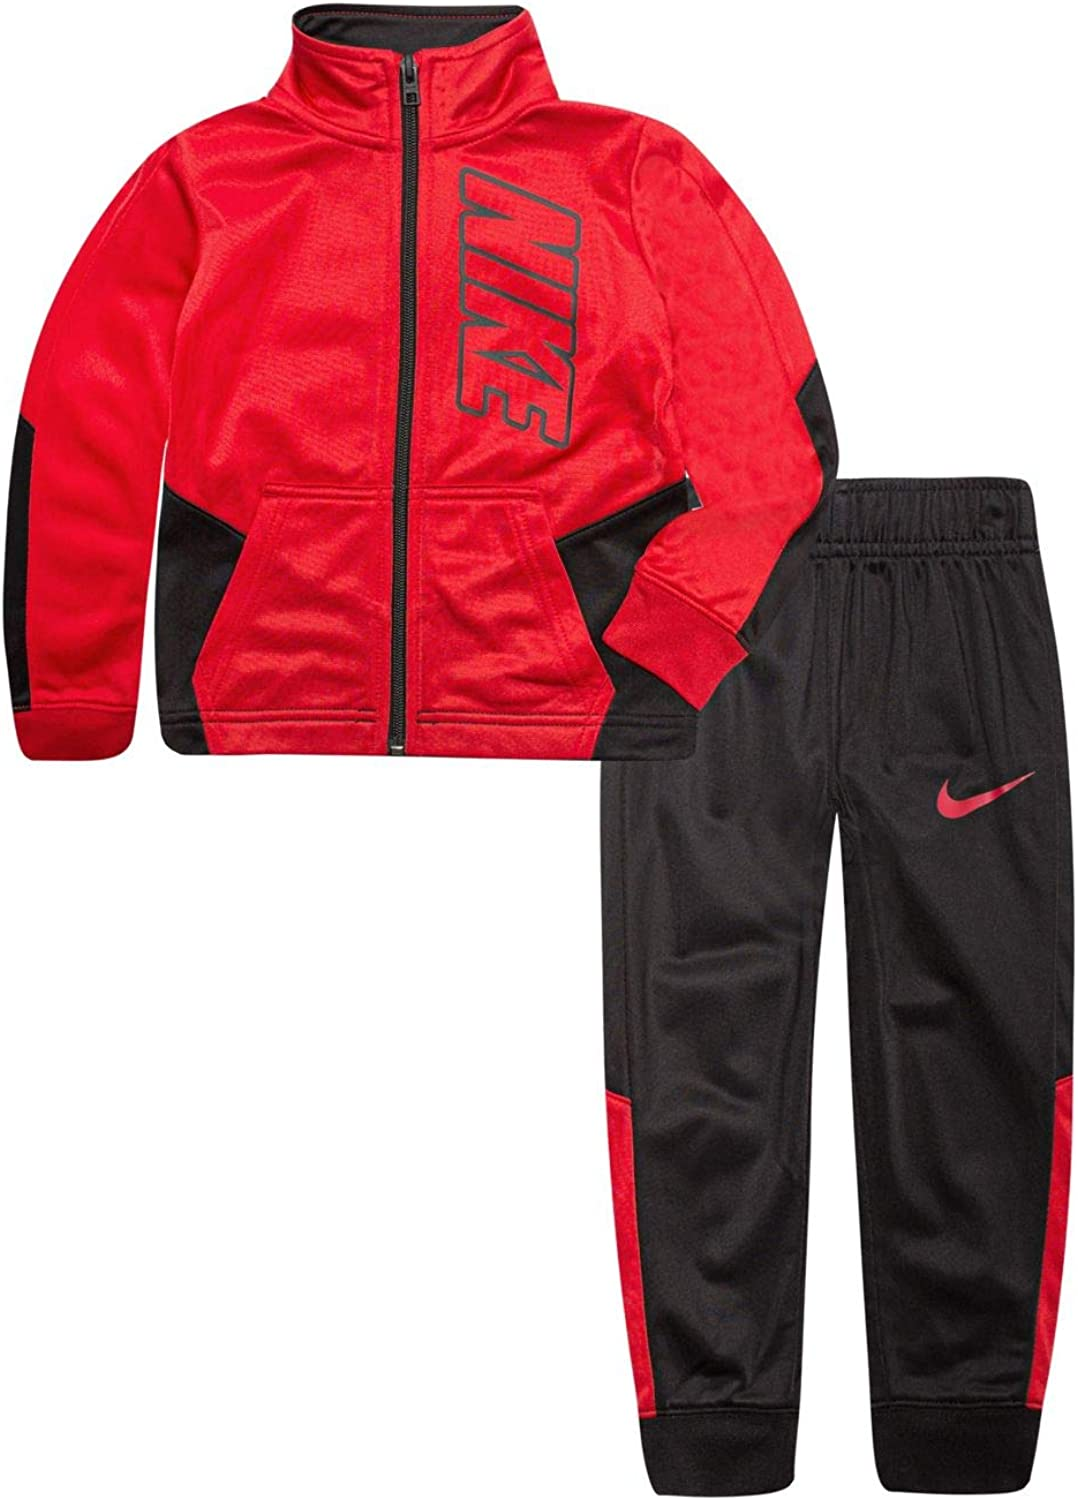 Nike Kids Baby Boy's Color Block Full Zip Hoodie and Jogger Pants Two-Piece Track Set (Toddler)